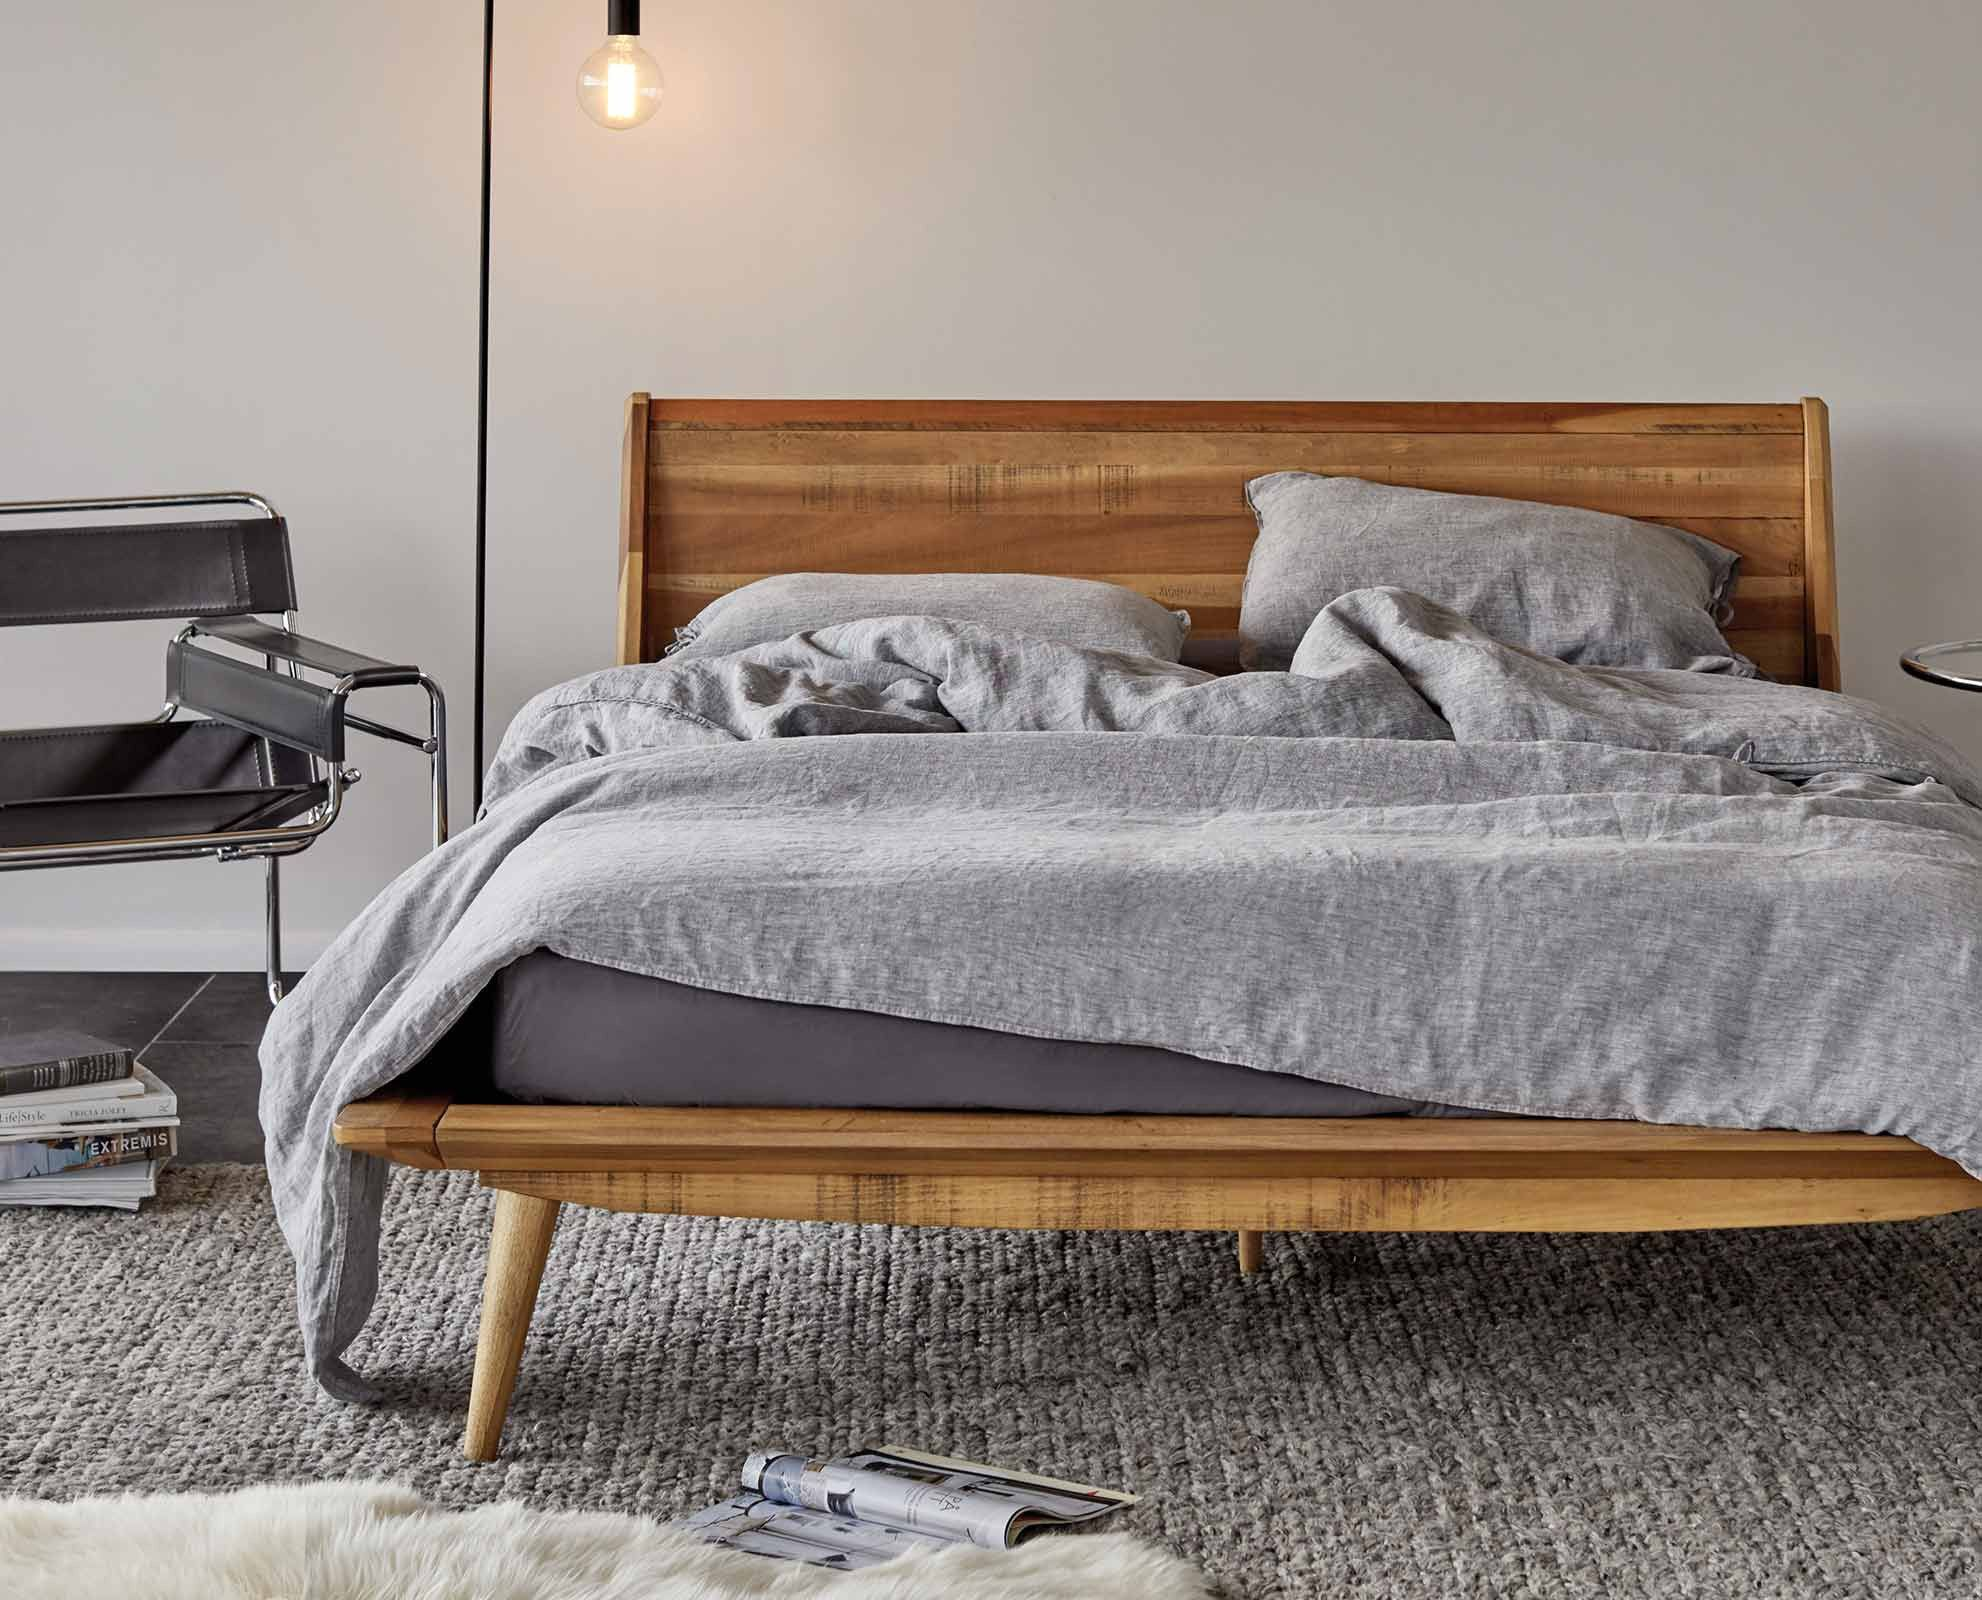 Merveilleux Contemporary Scandinavian Design Bedroom